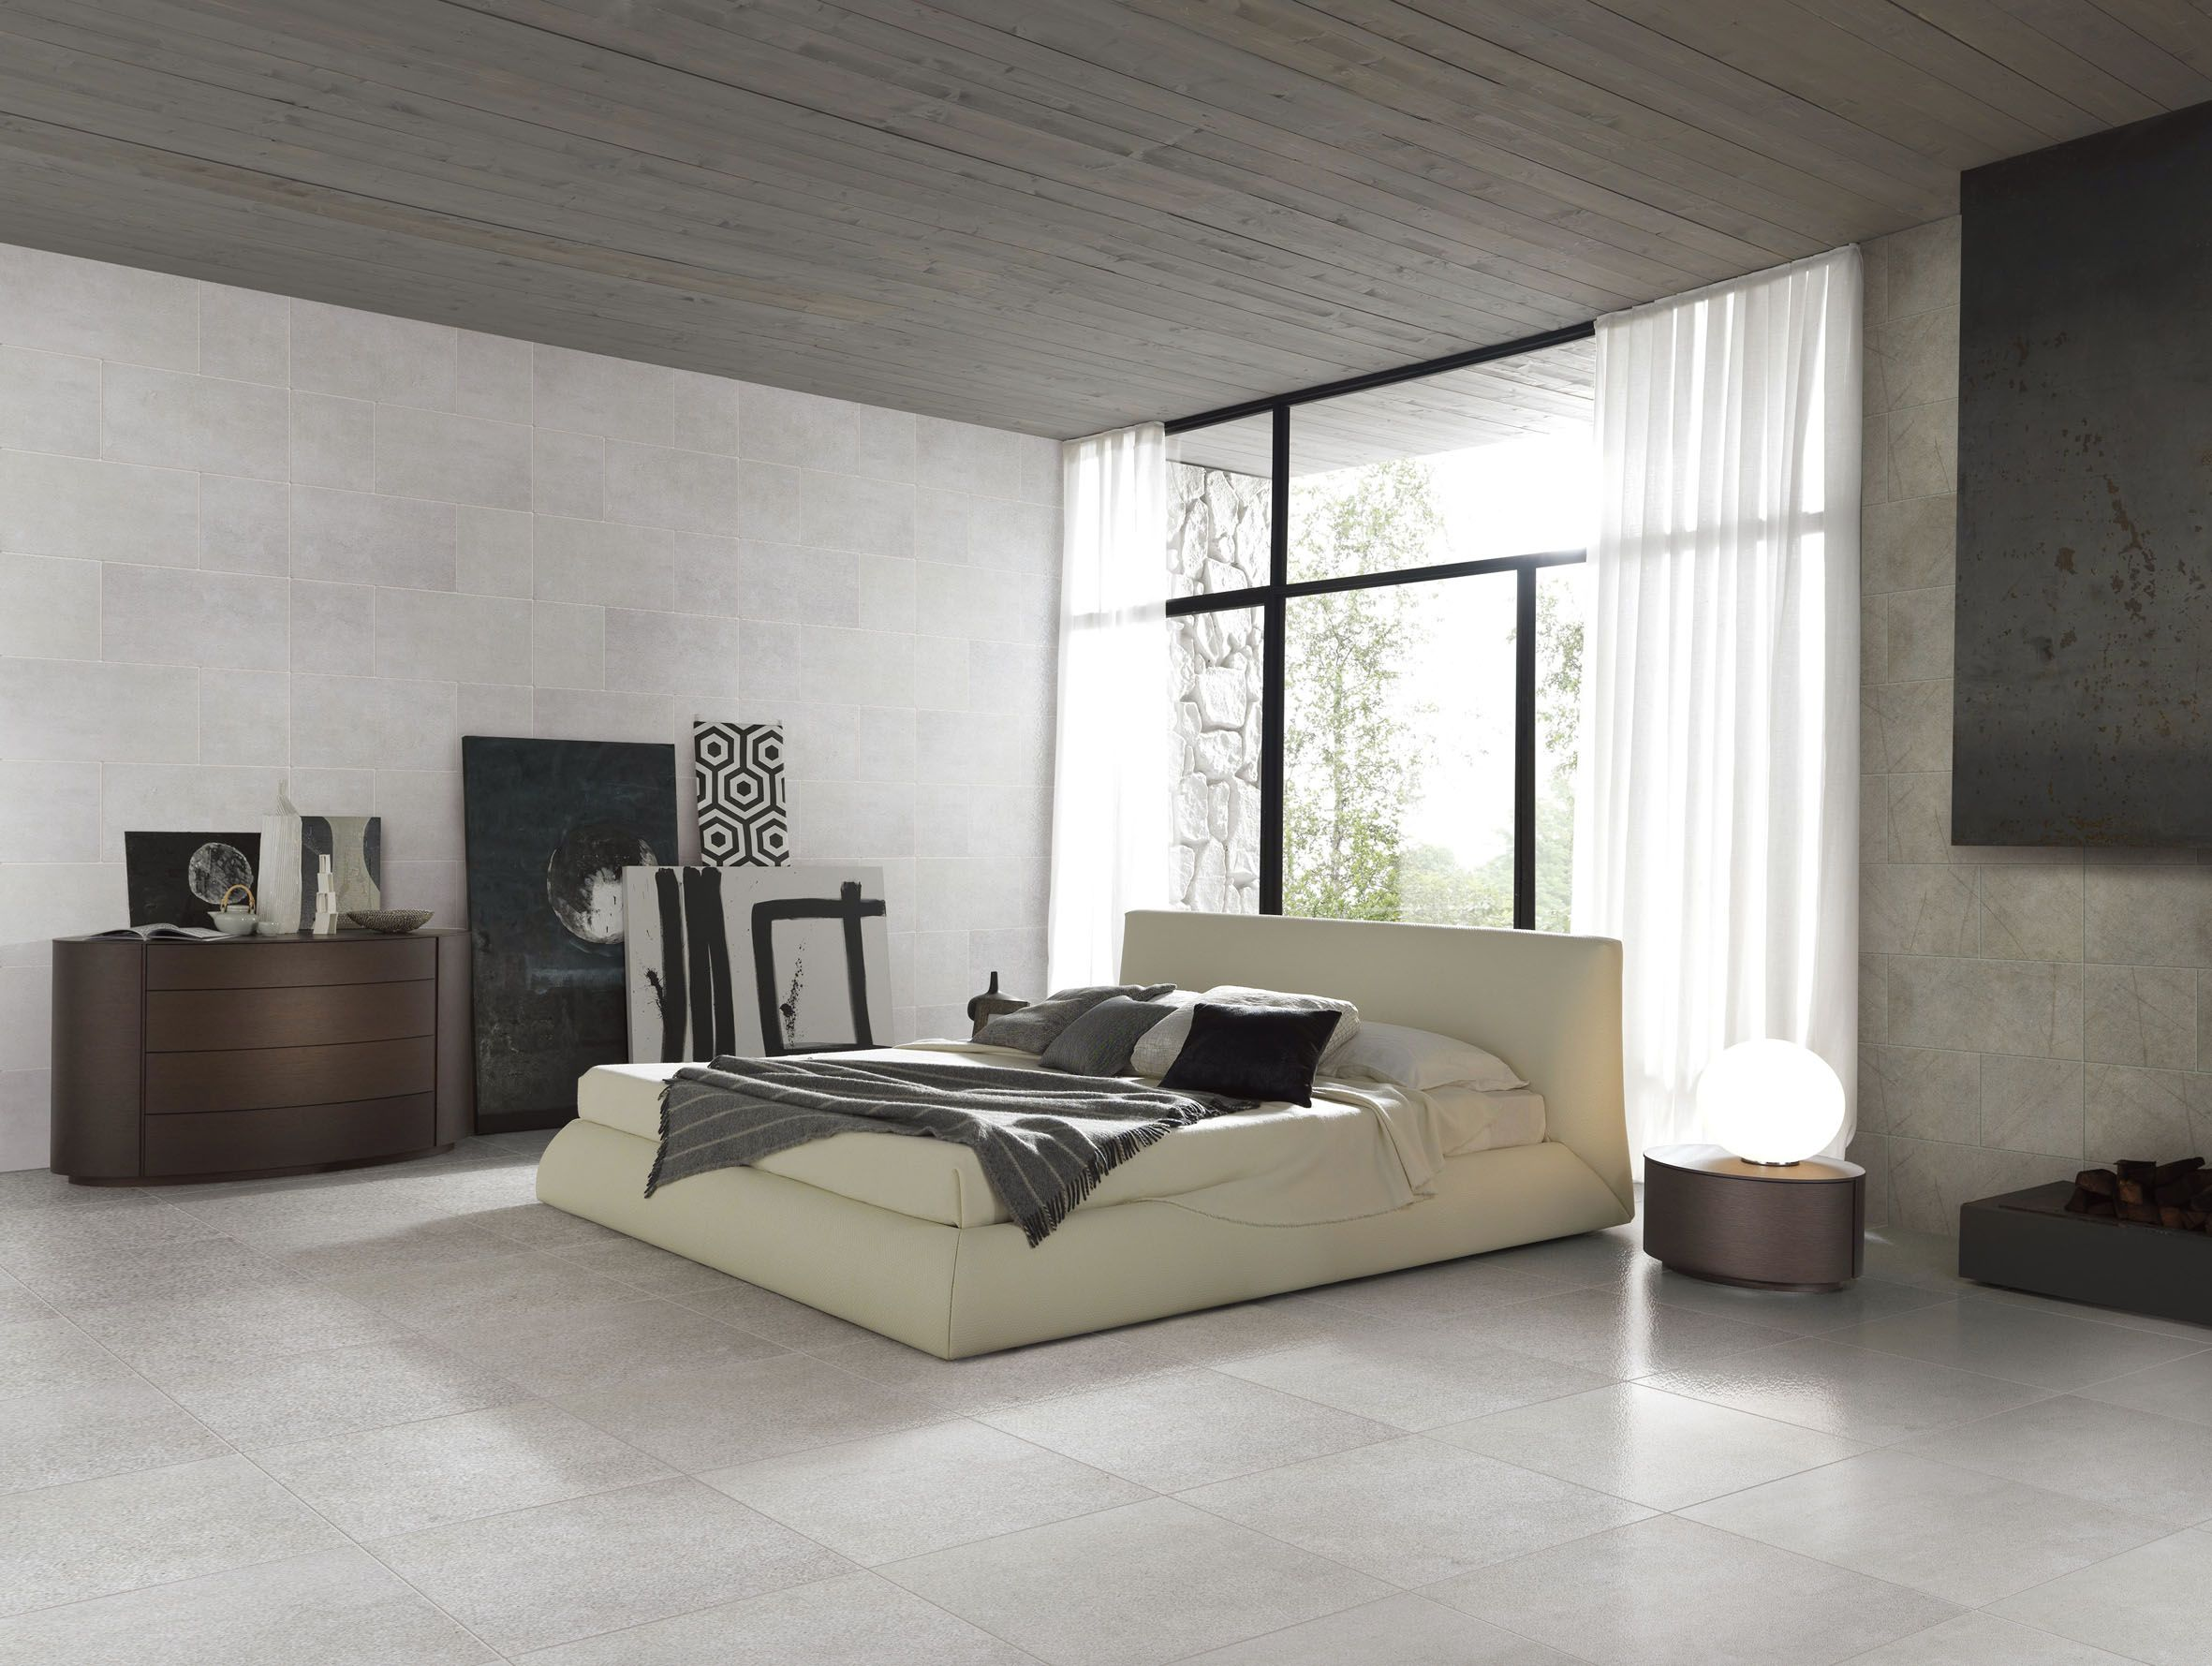 Firenze Is A Popular Cement Design Often Seen Through Newer Homes  # Muebles Firenze